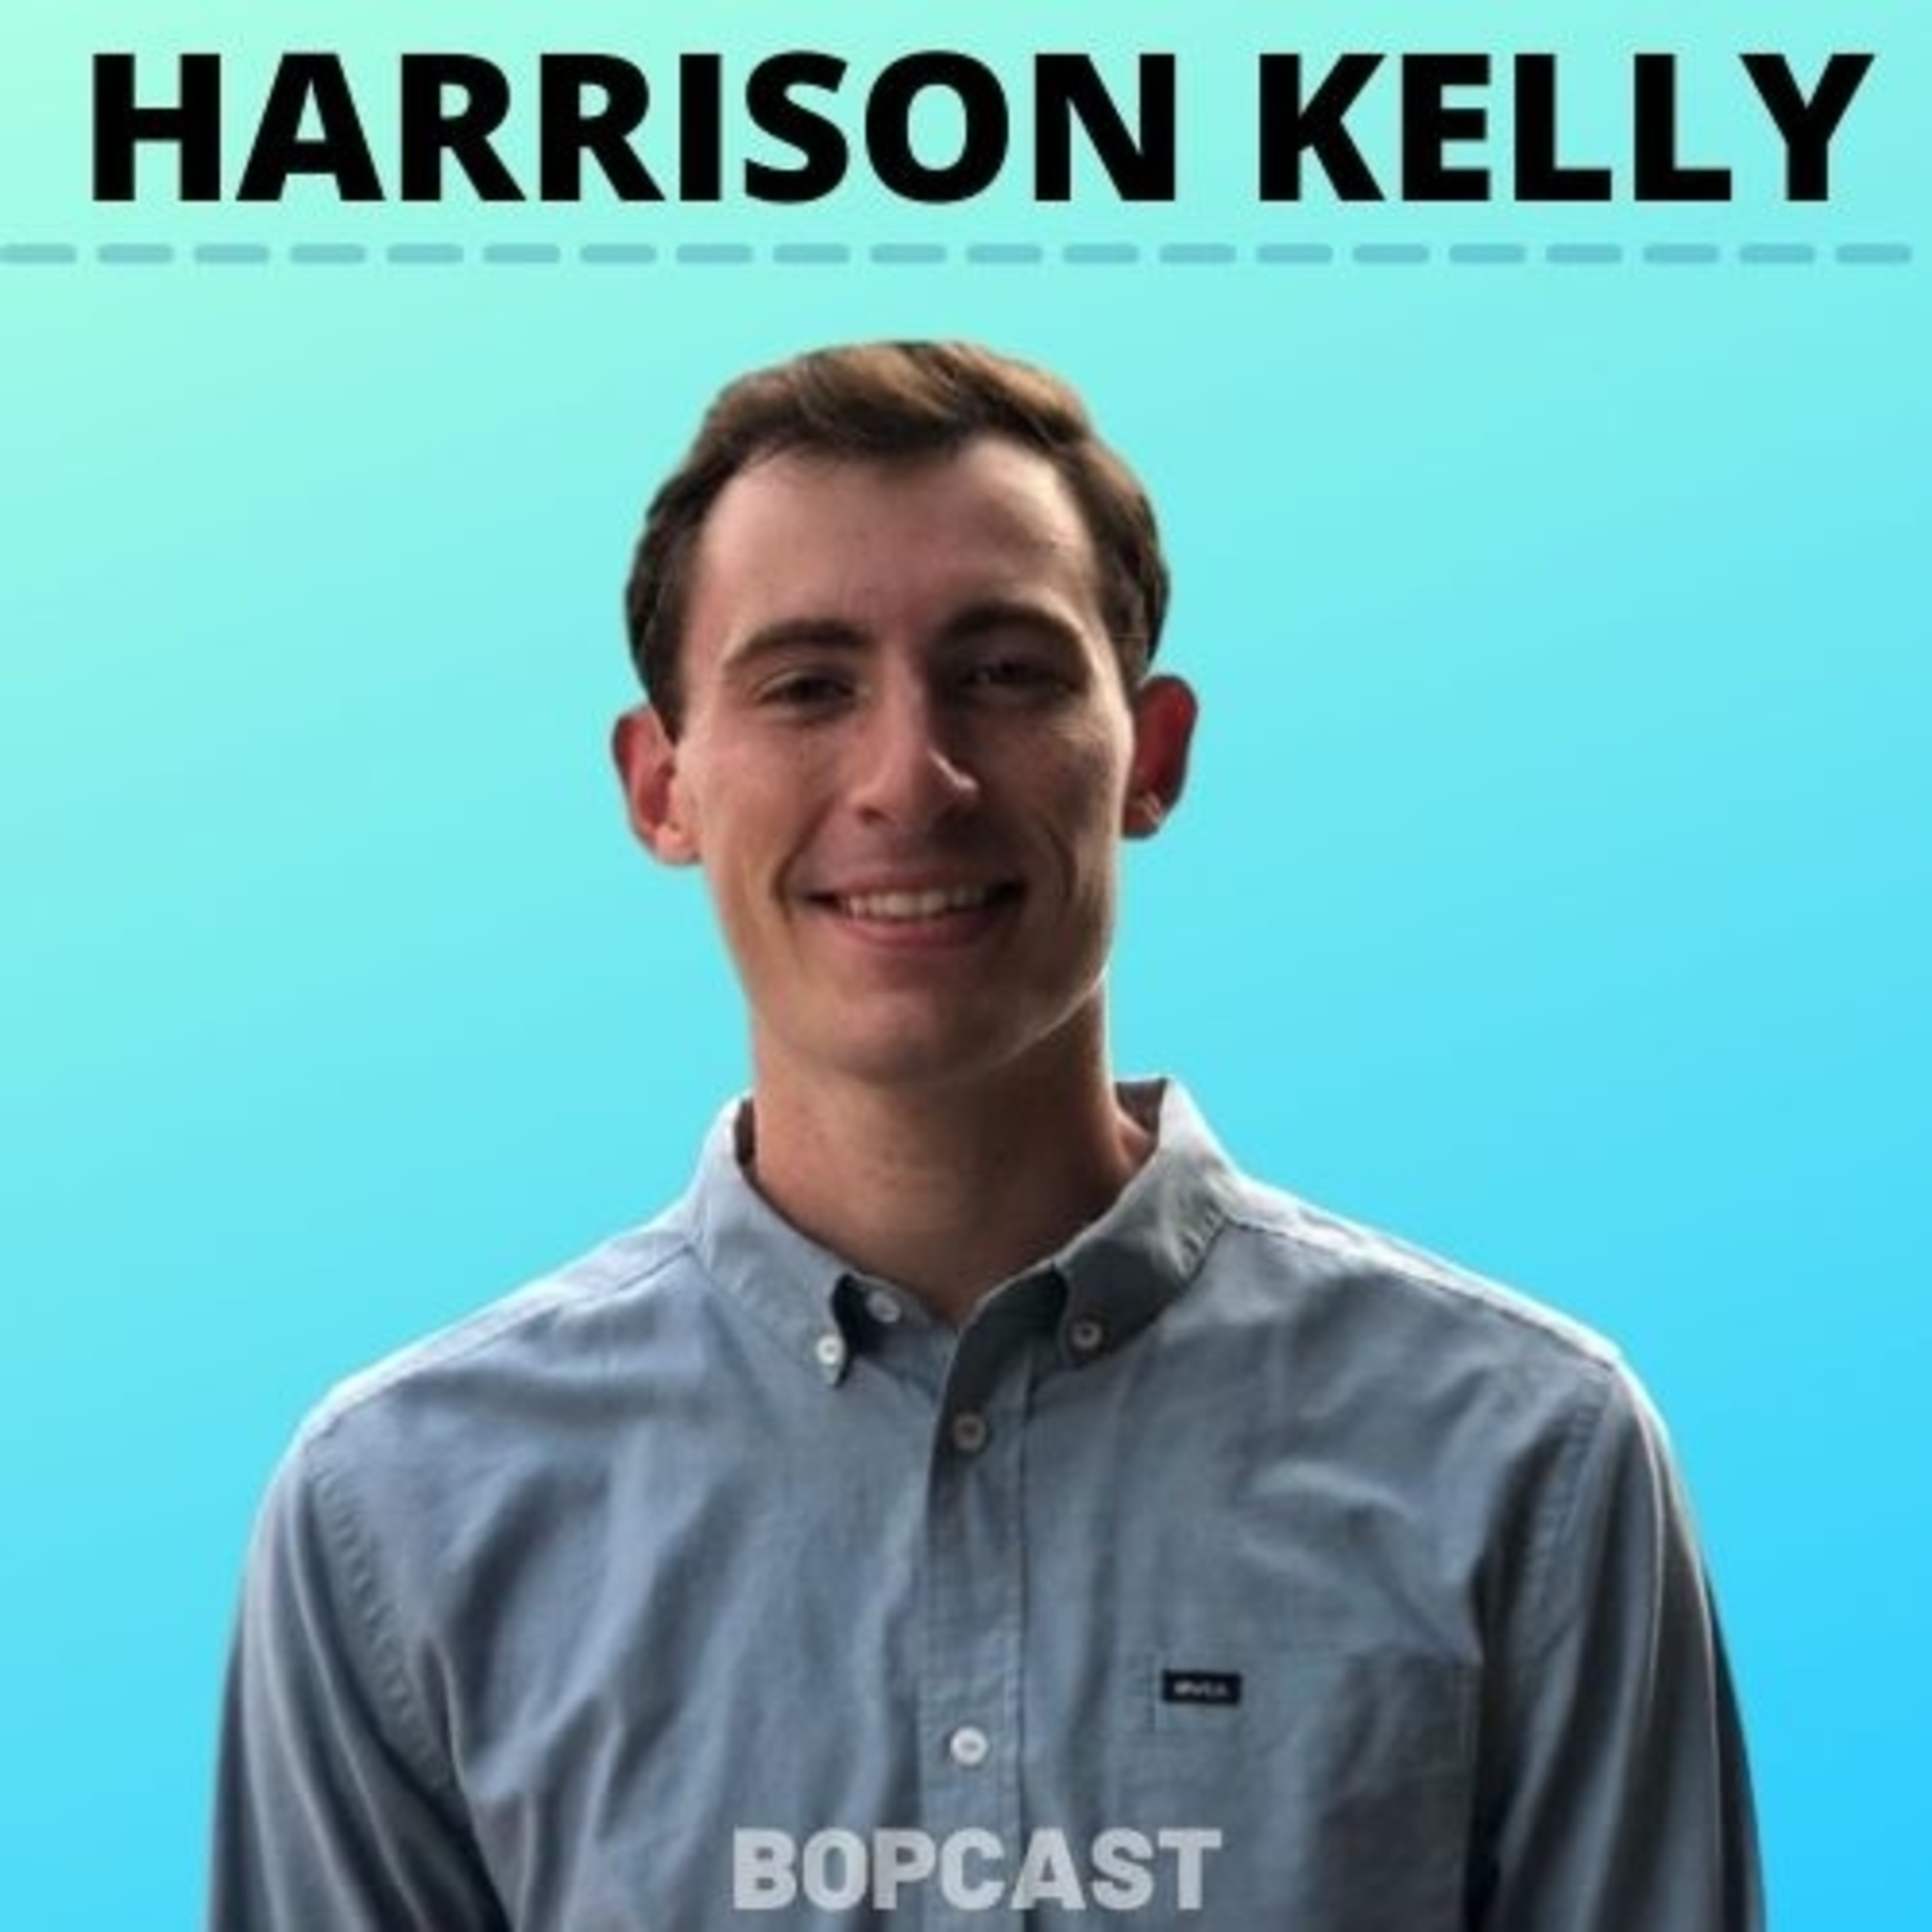 Comment Hacking, Untraditional Marketing, and Launching a Podcast about Mindset with Harrison Kelly